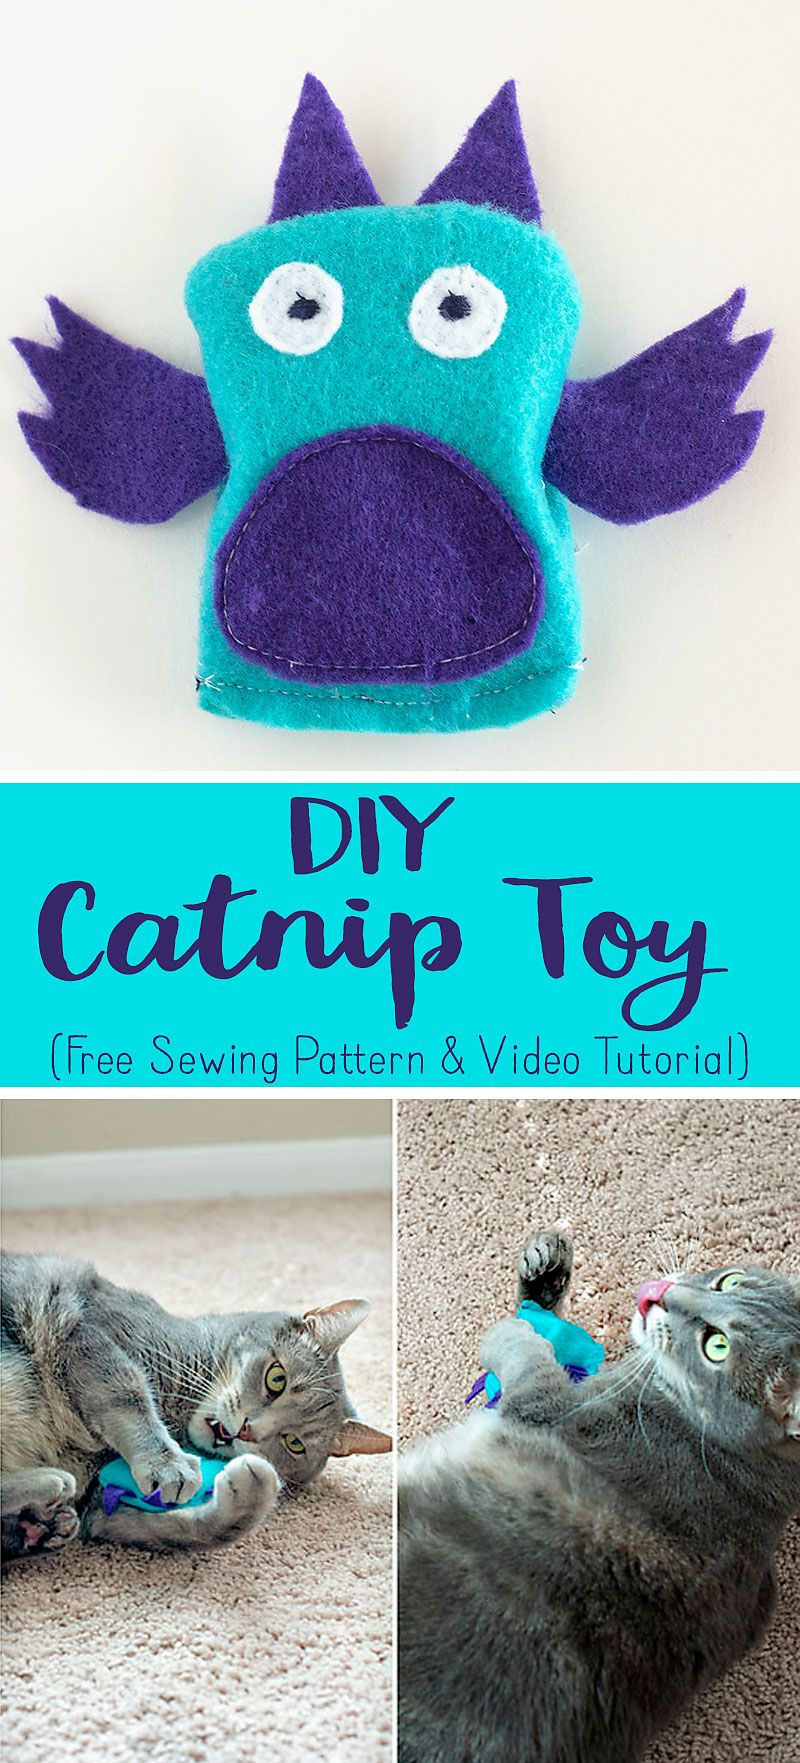 Learn How To Sew A Quick And Easy Catnip Toy For Your Kitty With